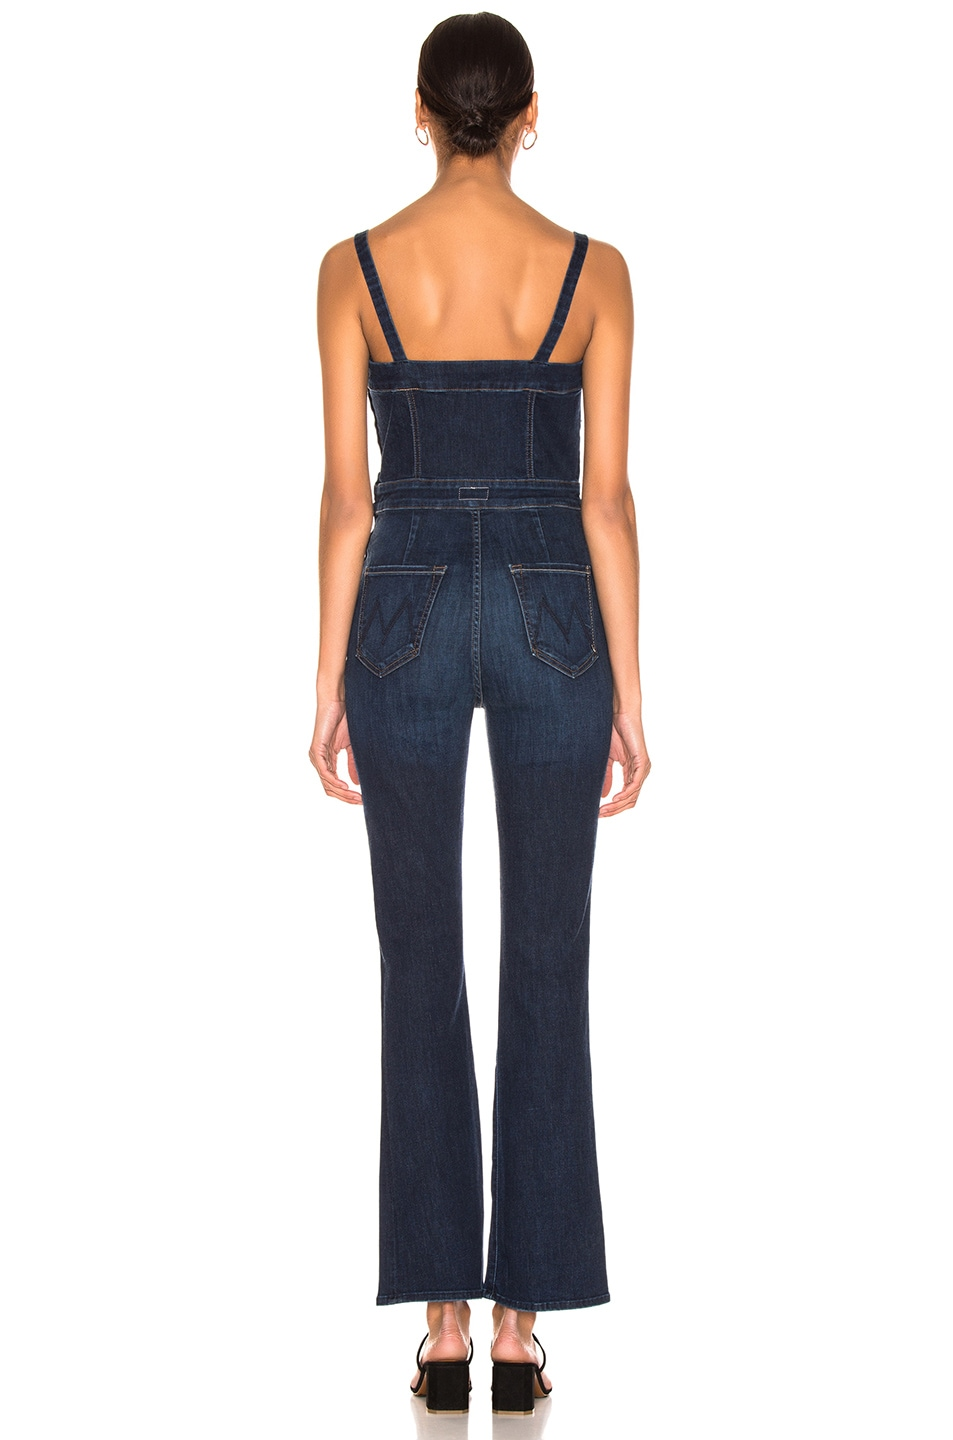 Image 3 of MOTHER Pocket Hustler Overall in Up Your Alley